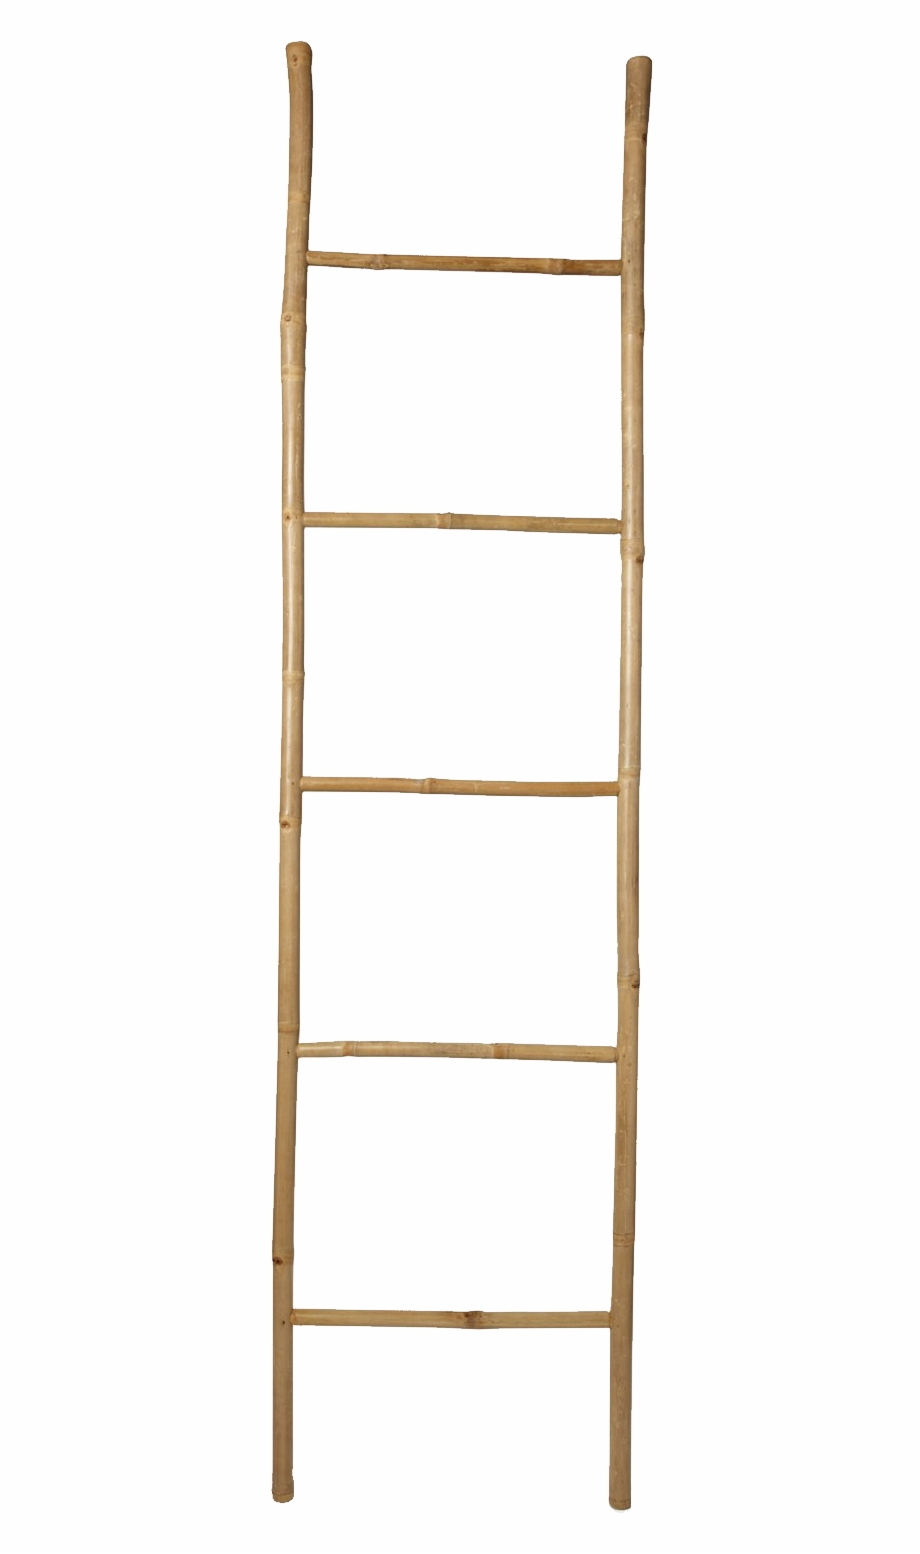 Wood Ladder Png.